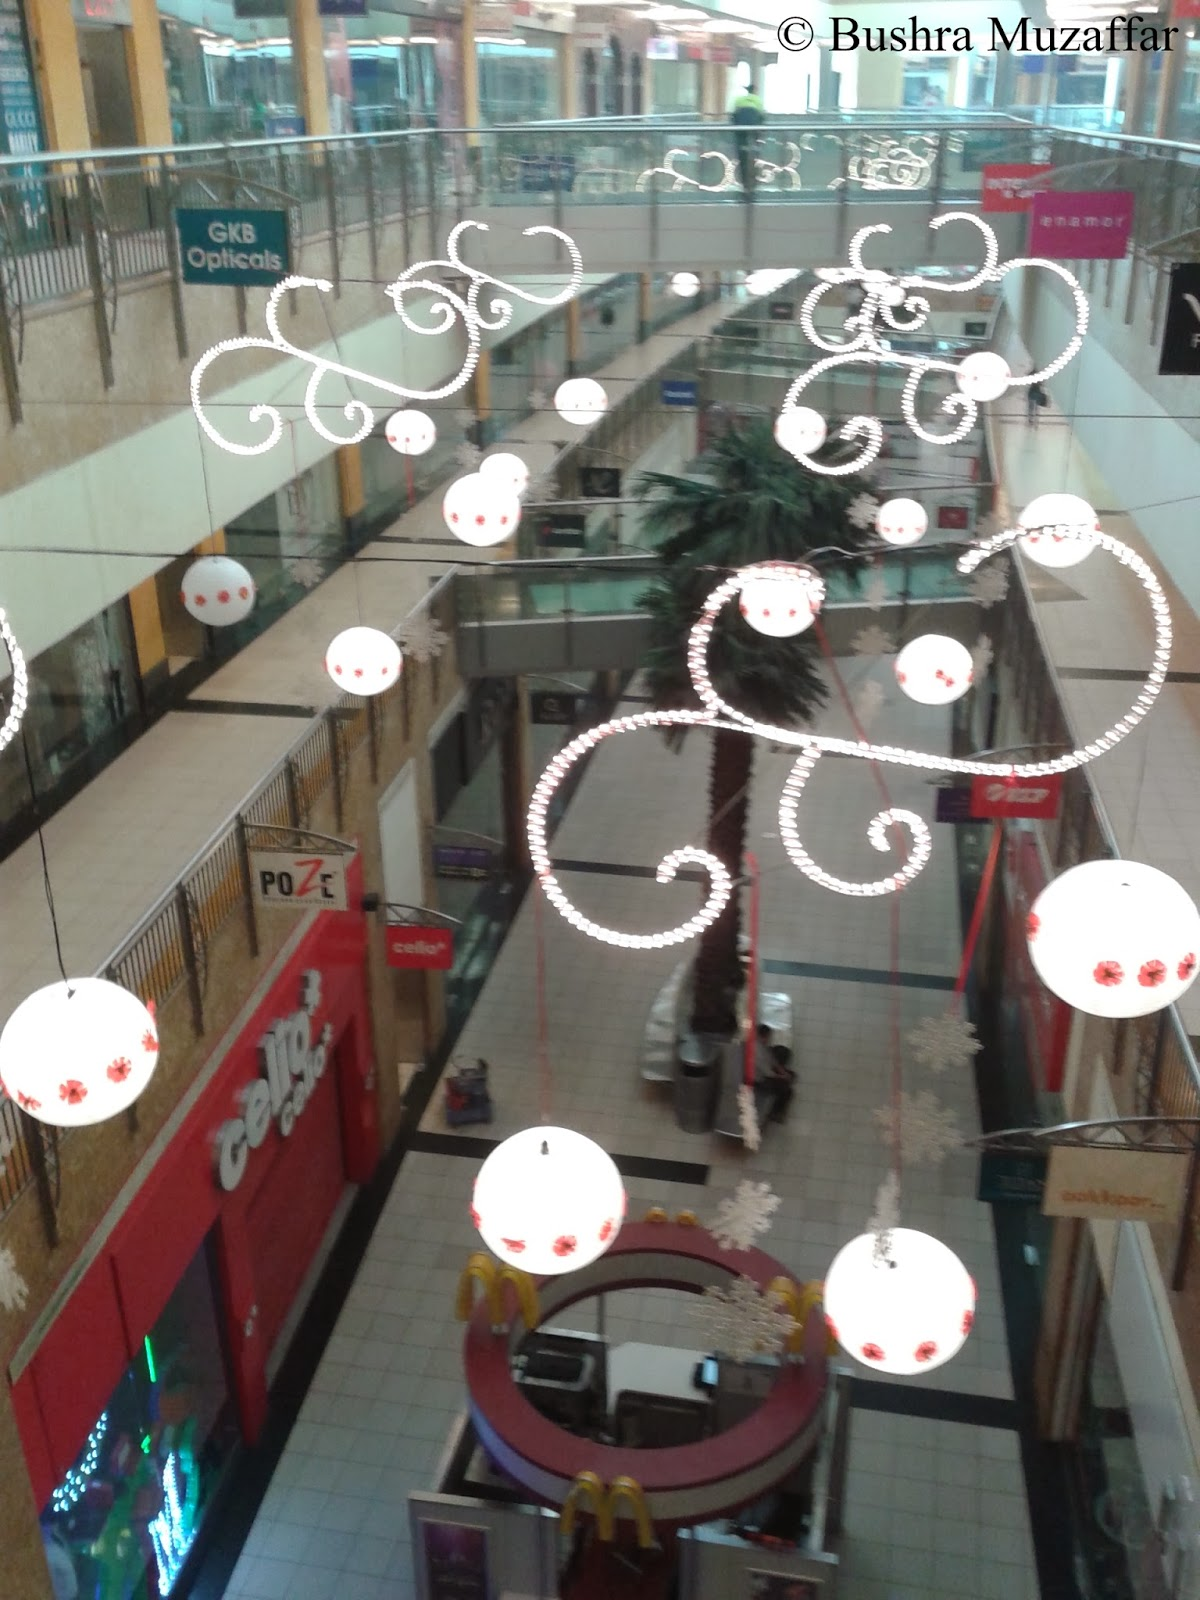 TGIP Mall, Noida decorated with beautiful lights